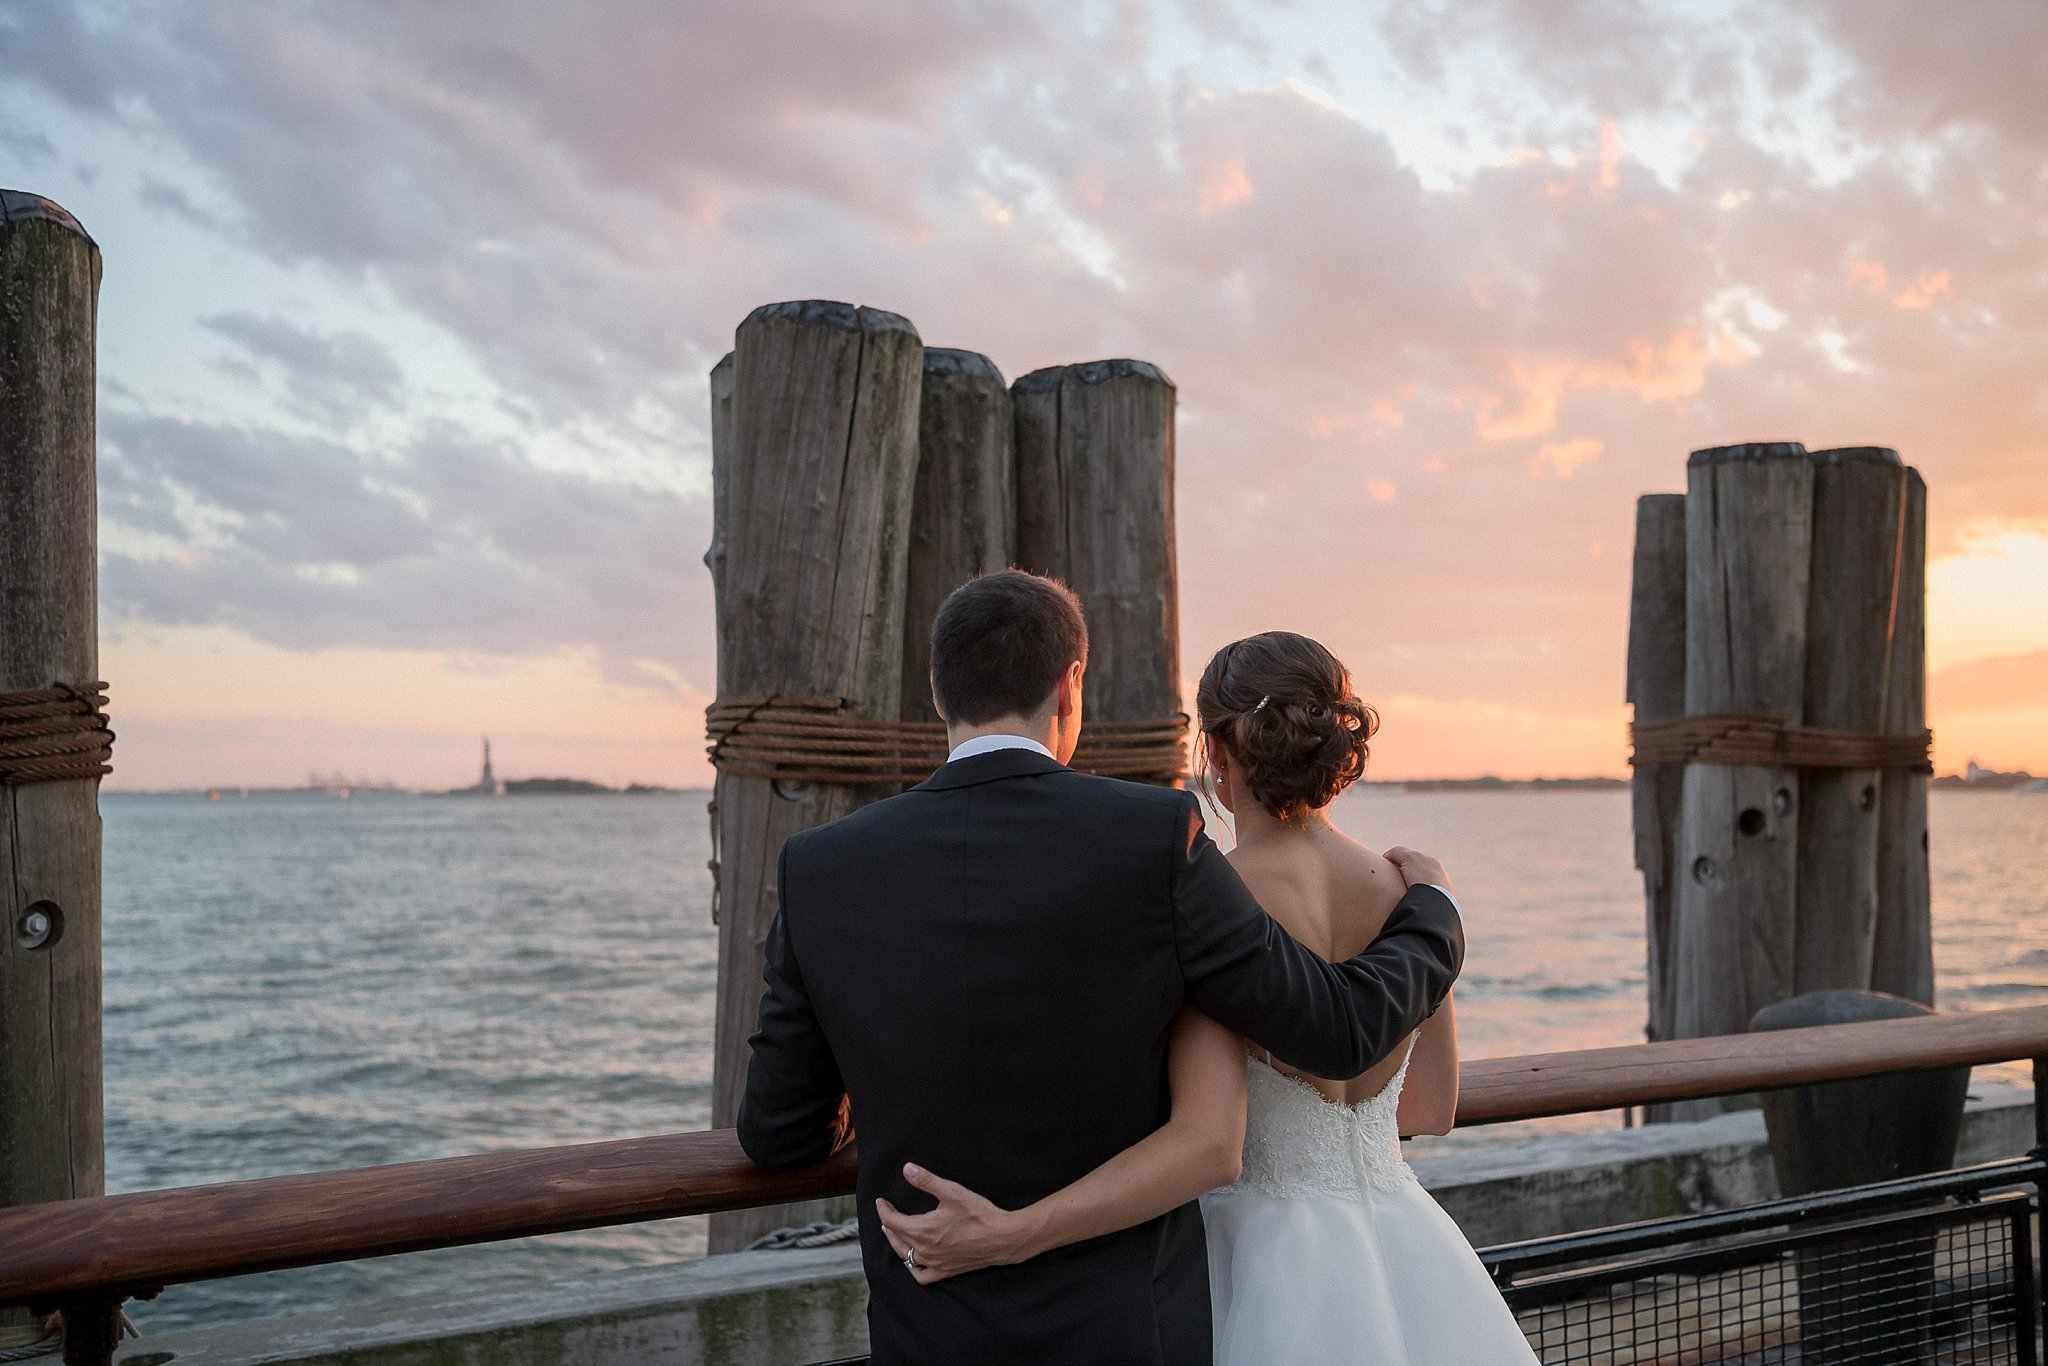 Wedding Couple Session, , photographed by Susan Shek Wedding Photography in New York City, NY.